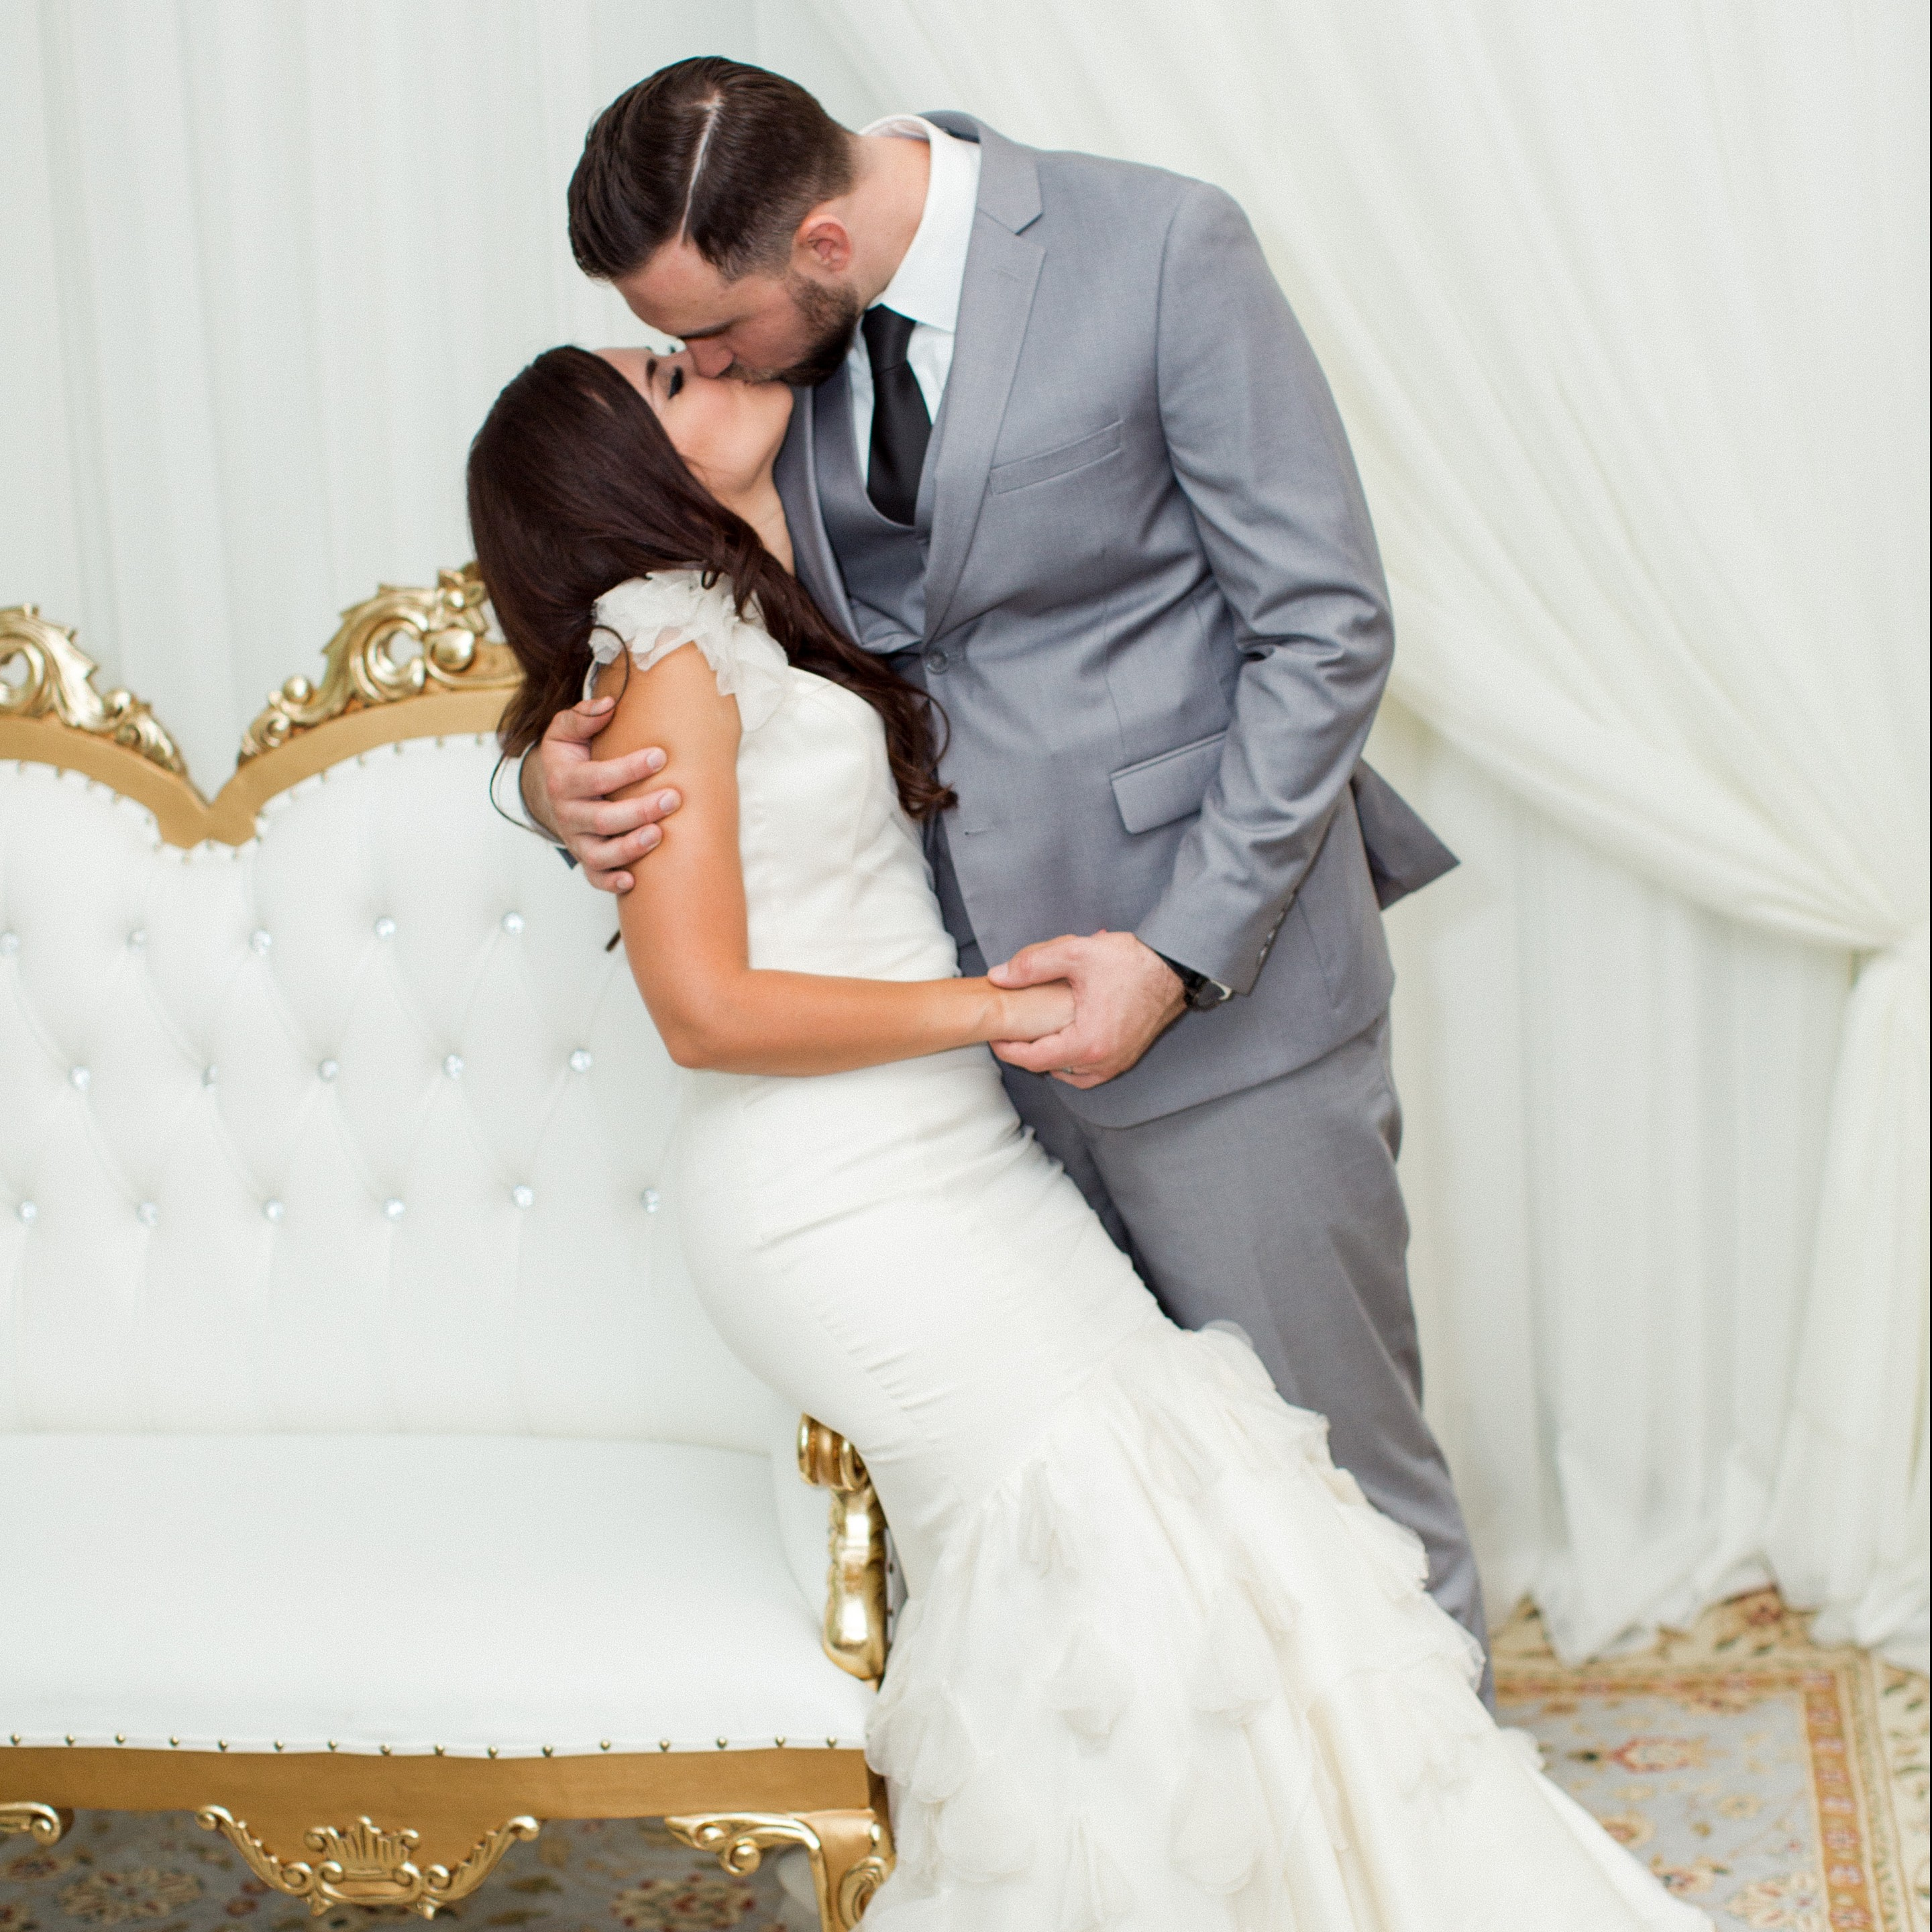 Villa Tuscana Reception Hall event showing couple kissing during photos